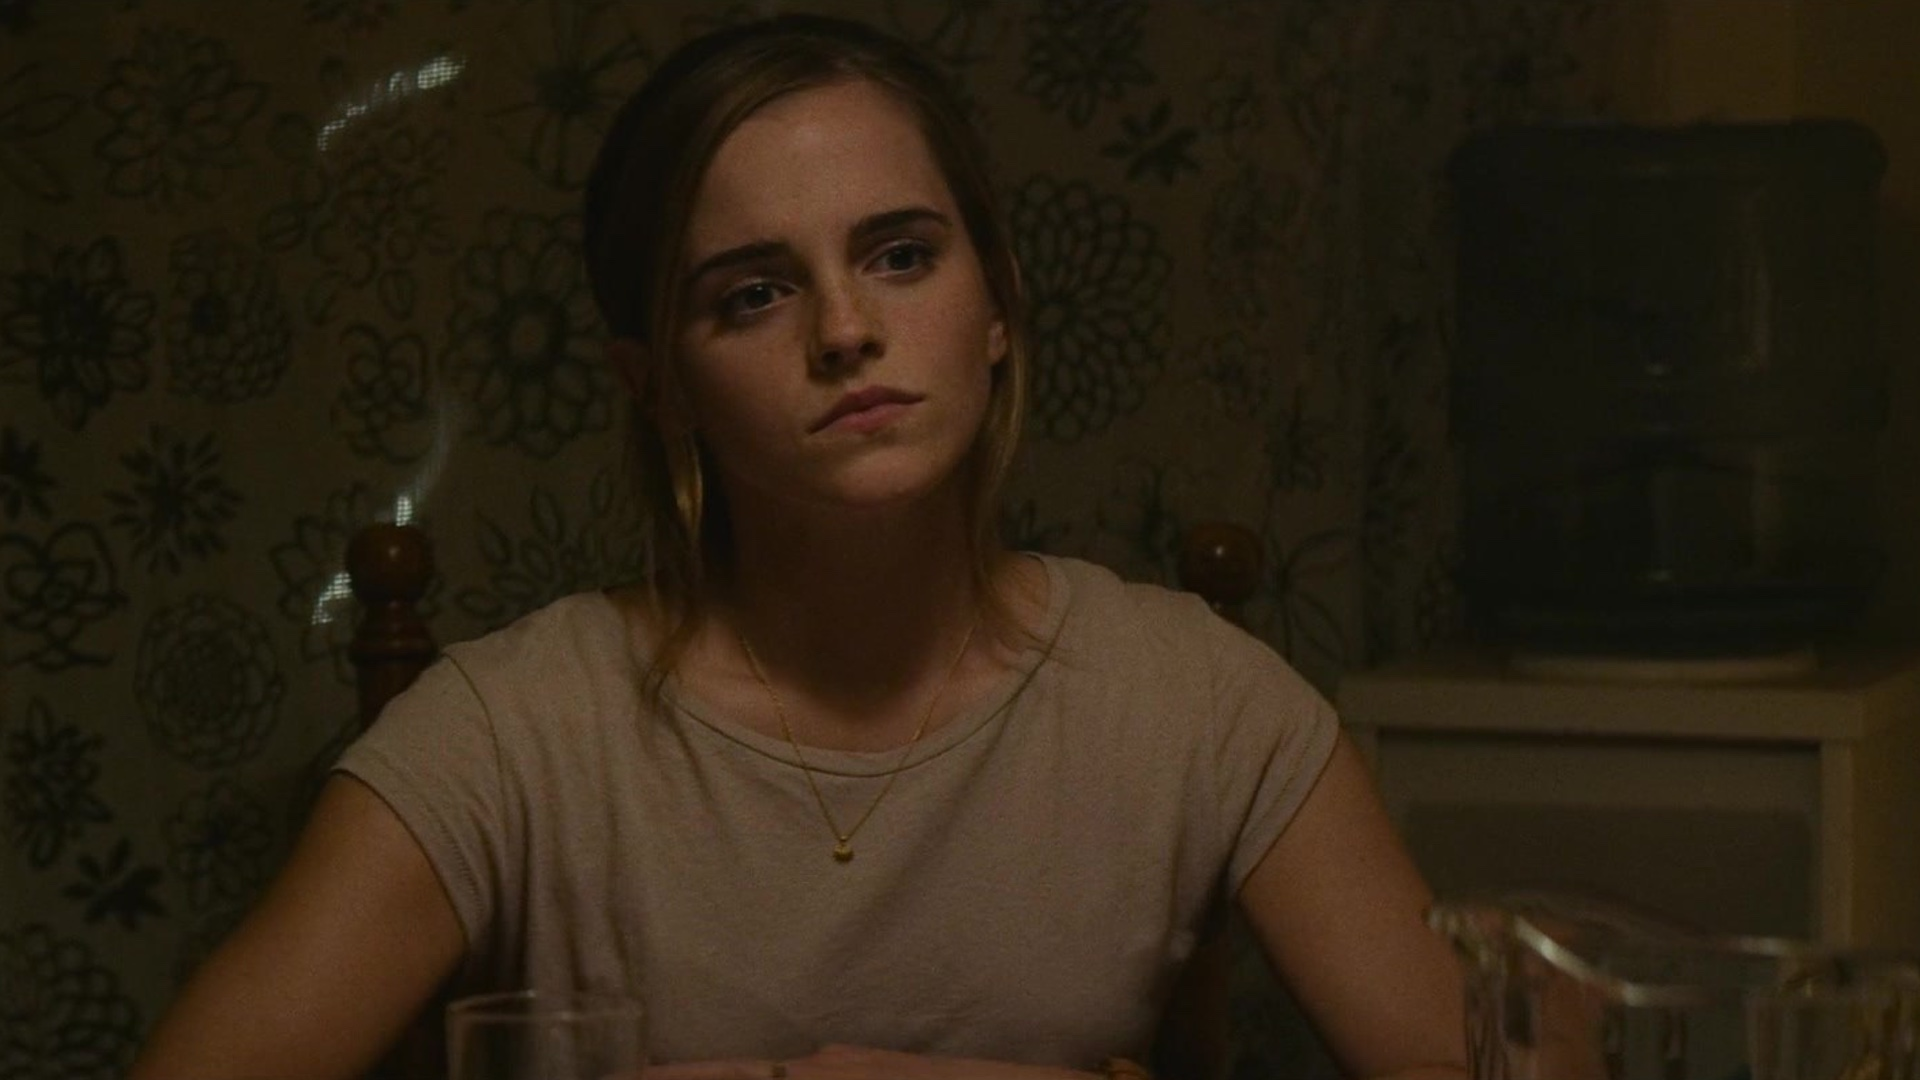 download Marvel Is Reportedly Looking at Casting Emma Watson 1920x1080